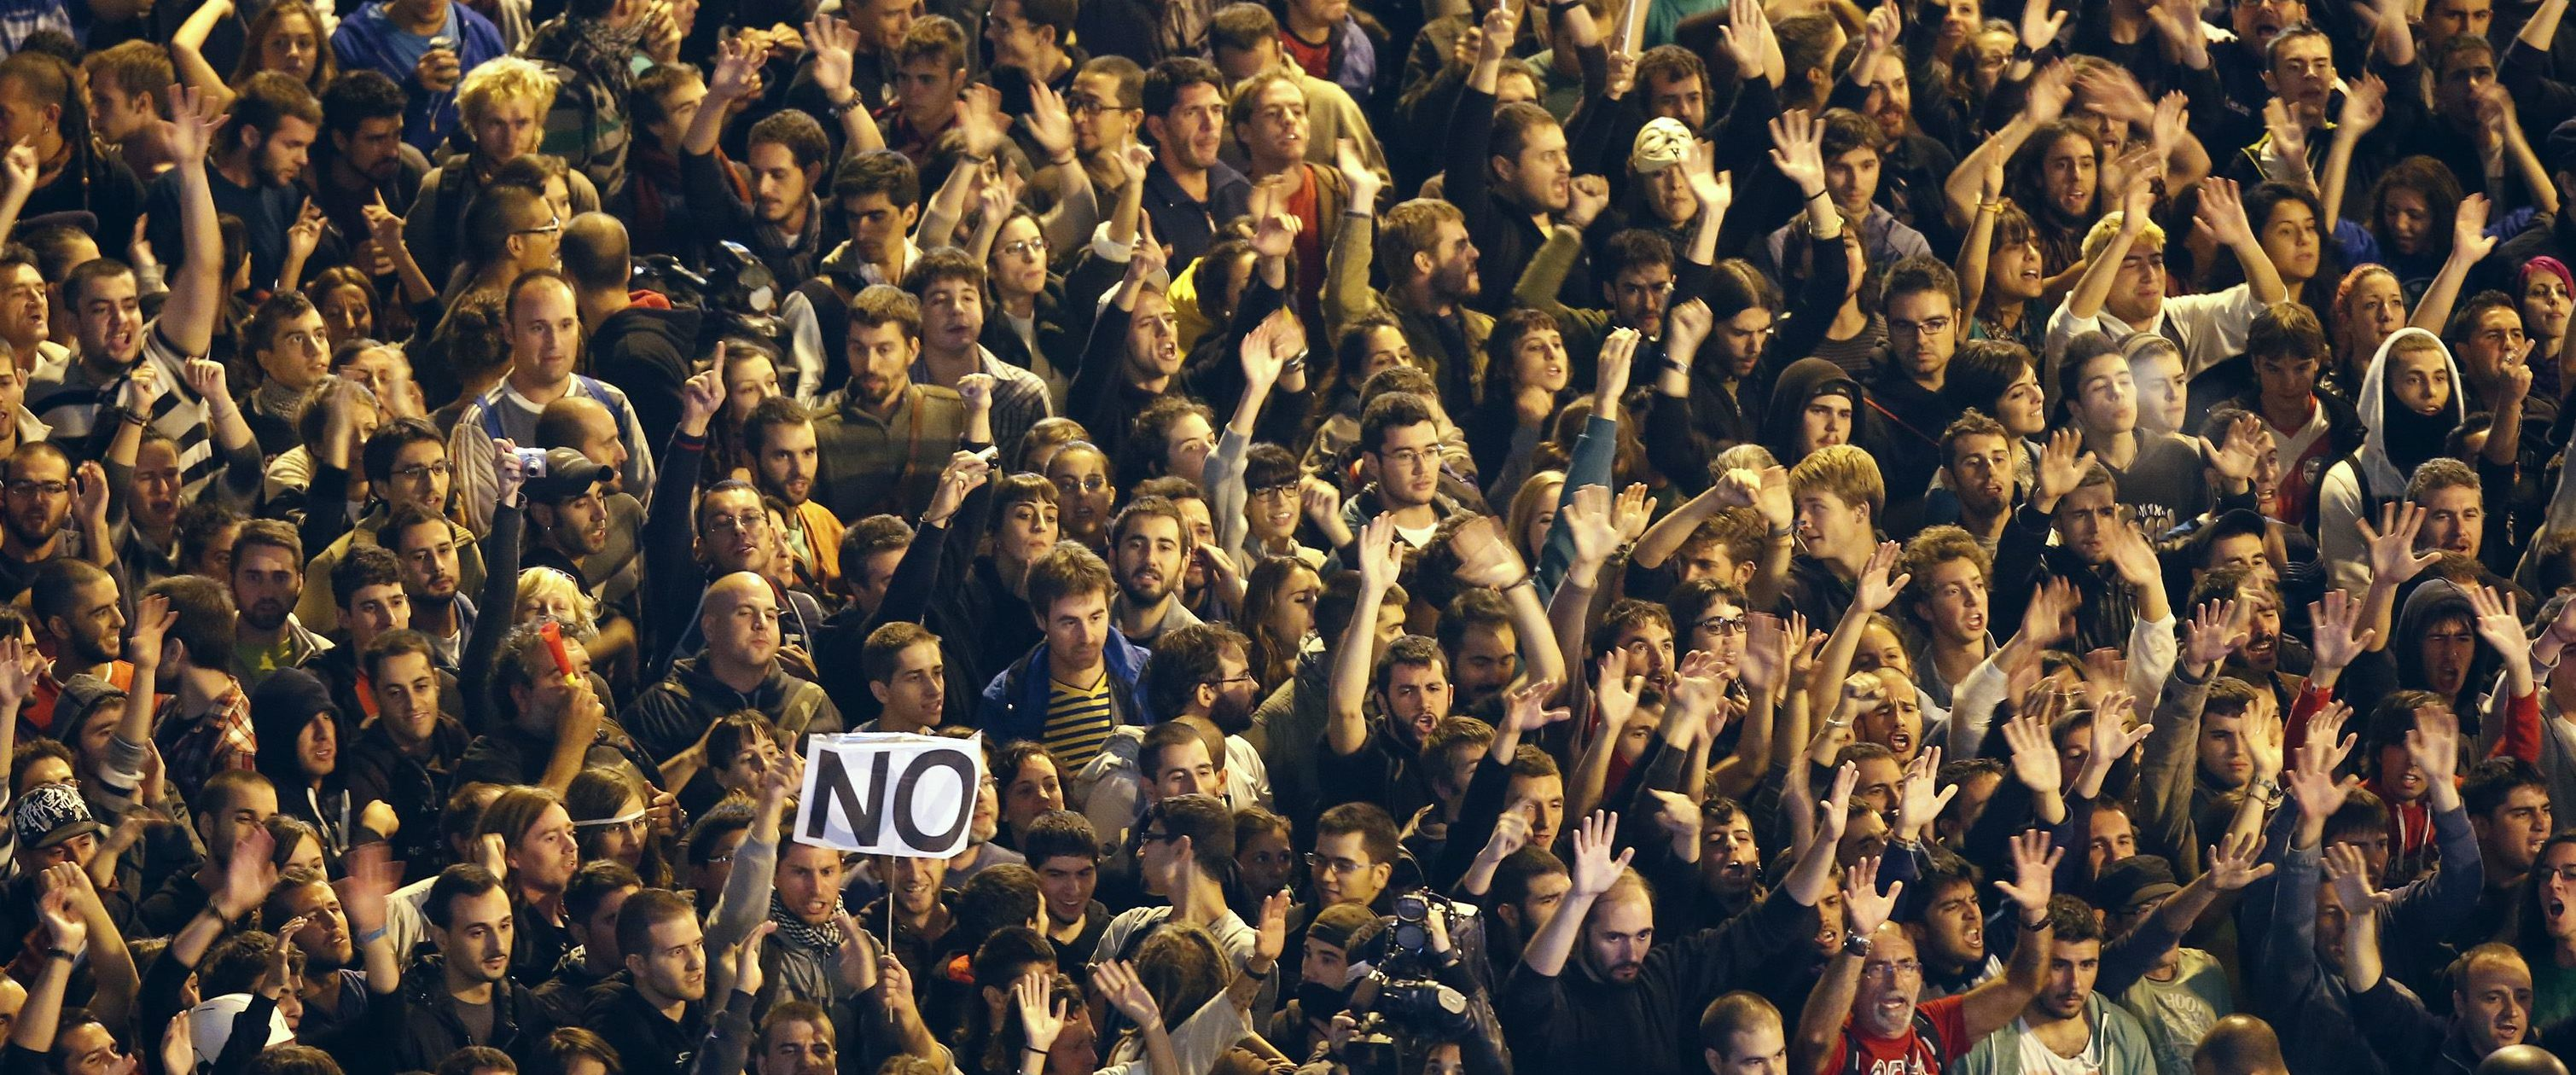 Protesters gather close to Spain's Parliament during demonstration in Madrid